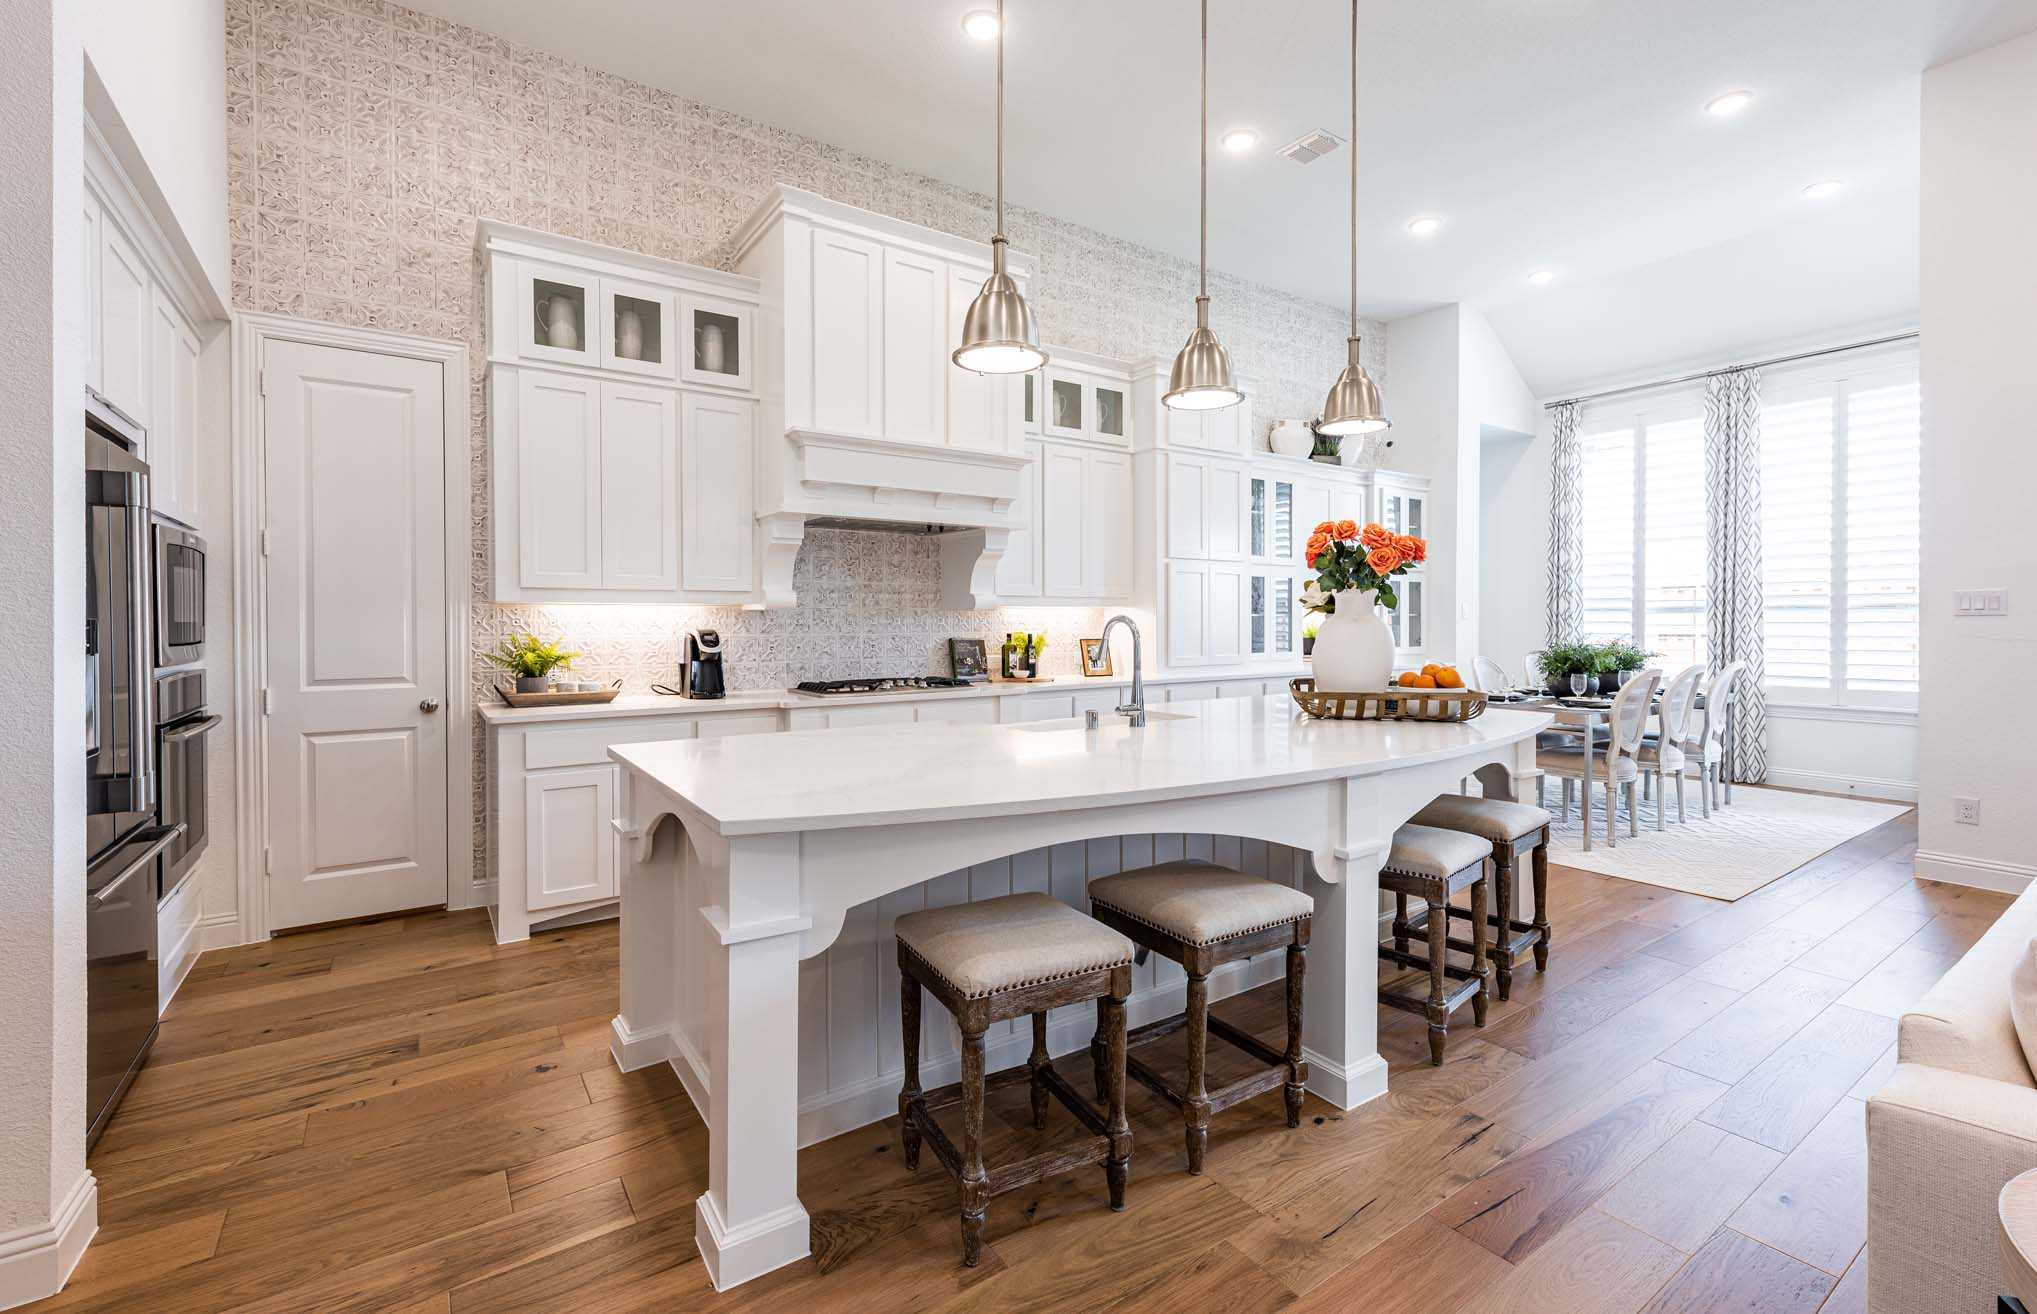 Kitchen featured in the Plan 274 By Highland Homes in San Antonio, TX